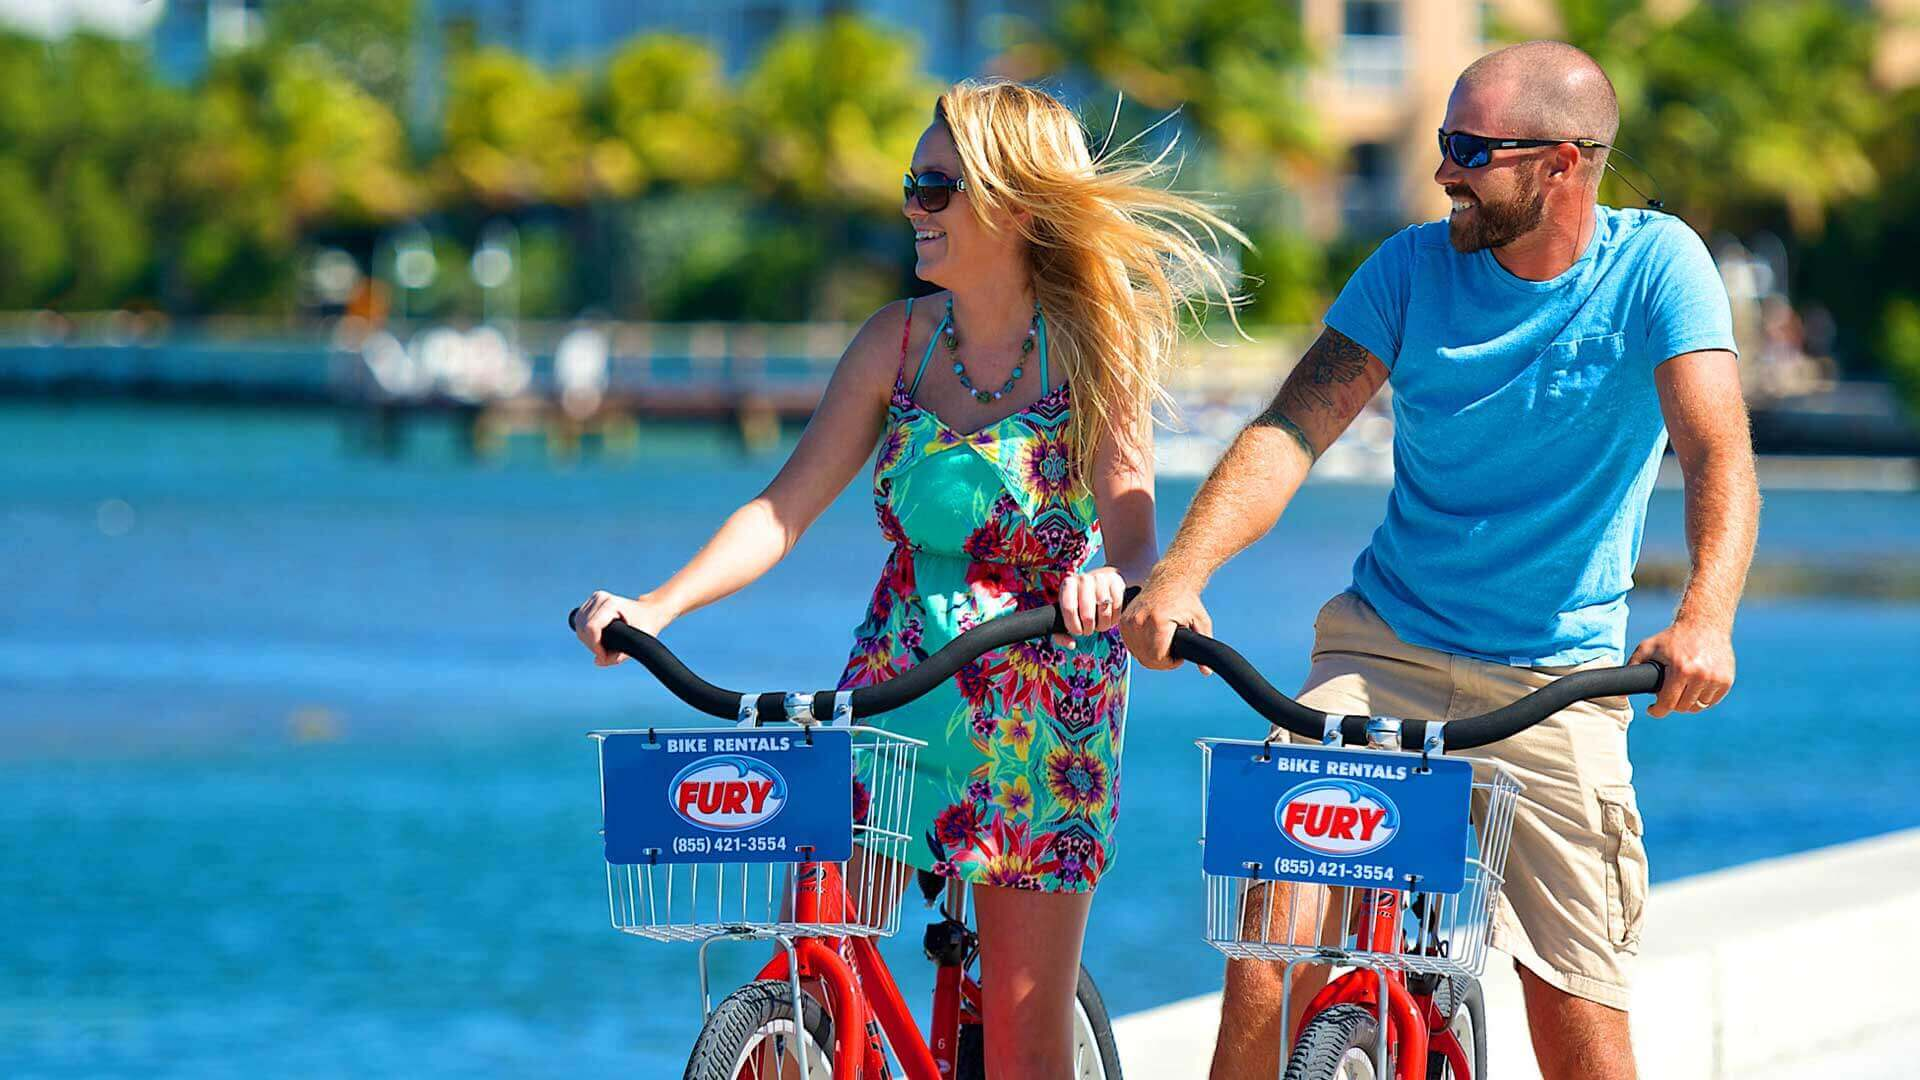 Image of Couple on Fury bike rentals outdoors in key west